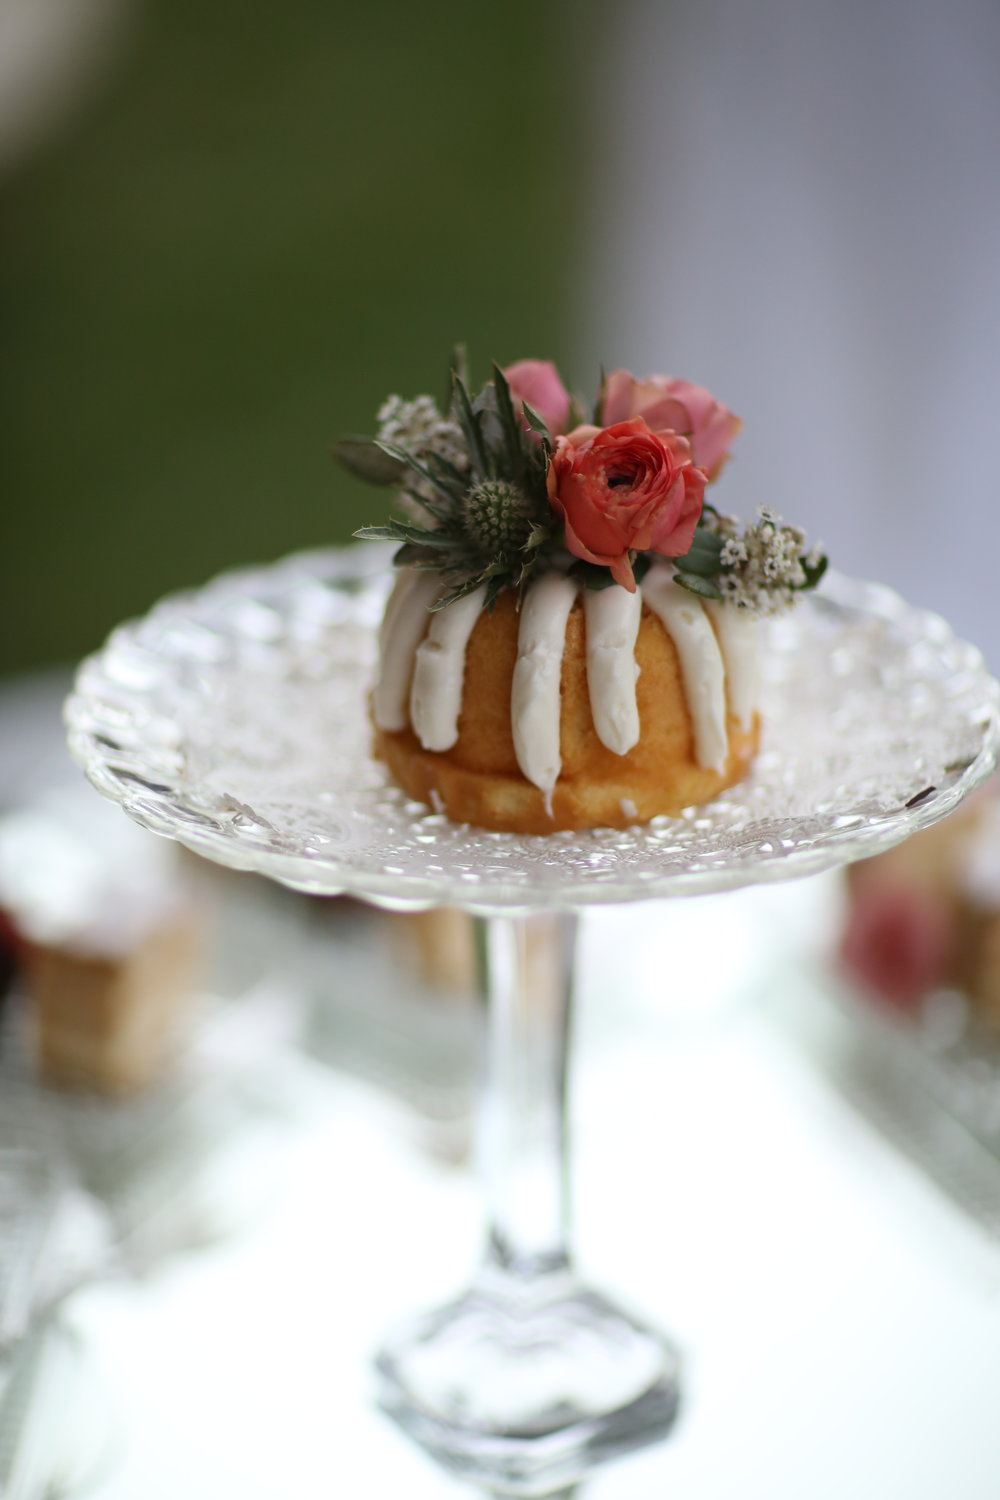 Nothing Bundt Cake on a tall cut glass pedestal platter. Decorated with flowers. Wedding reception.